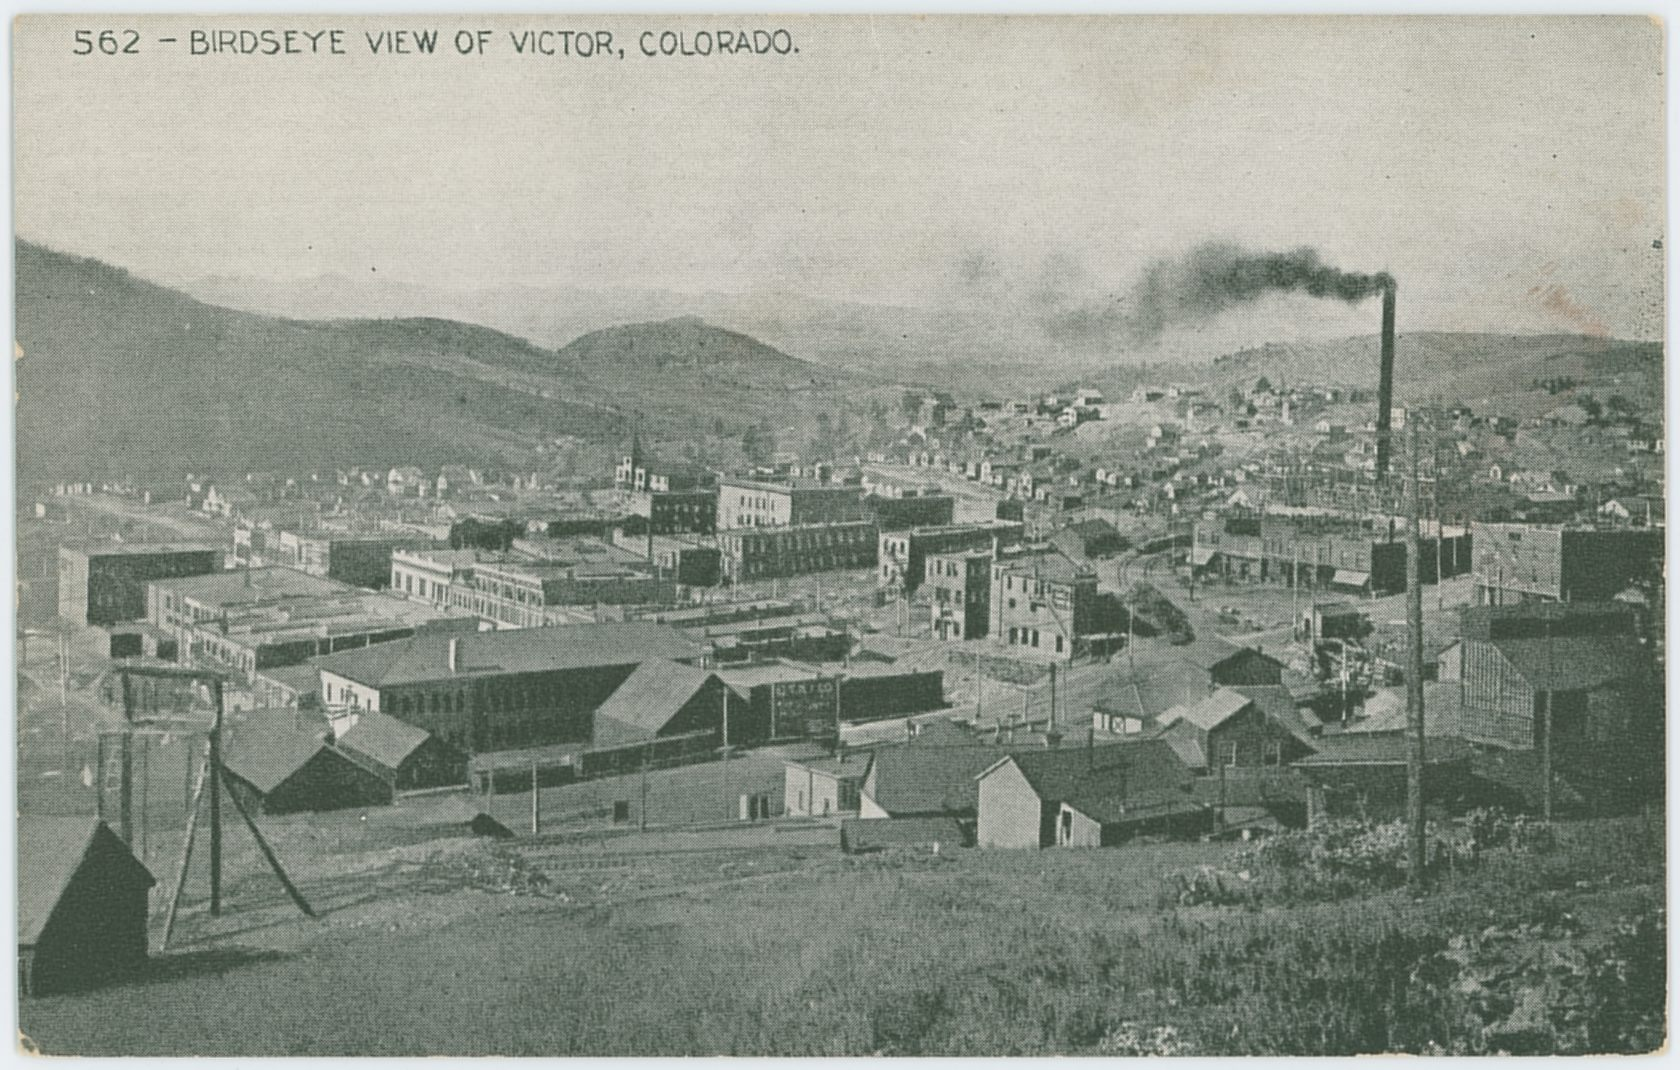 Yet another interesting view from Battle Mountain towards the Gold Coin mine in Victor, as it is getting rebuilt after the 1899 fire that destroyed the old mine and lot of the town itself. Just too bad that all edition of this view that I've seen is from printed sources, from the bad quality printed postcard this view is from, to an even worse in a Souvenir folding book published to promote the Midland Terminal. While it is really hard to tell, it appears possible that in this view not even the Ore-house has been rebuilt yet, but it is too darn hard to tell for sure. I see the smokestack, the head frame can be picked out as exposed, and it looks like there is a wooden frame around the area where brick walls are known to have been. It may also be in the time frame around 1920/1921 when they tore down the Gold Coin, I really can't tell from this single image! In the foreground, right, is the distinctive Ore-house of the Mary Cashen seen, and outside the view to the right would the head frame for that mine be.  Victor Public Sampler is the long structure just left of the Mary Cashen, with its cupola on the roof and with part of it outside the view at right. The mine seen with its small head frame and hoist house at lower left is for the moment a mystery to me at the time of this writing [19.02.2017].